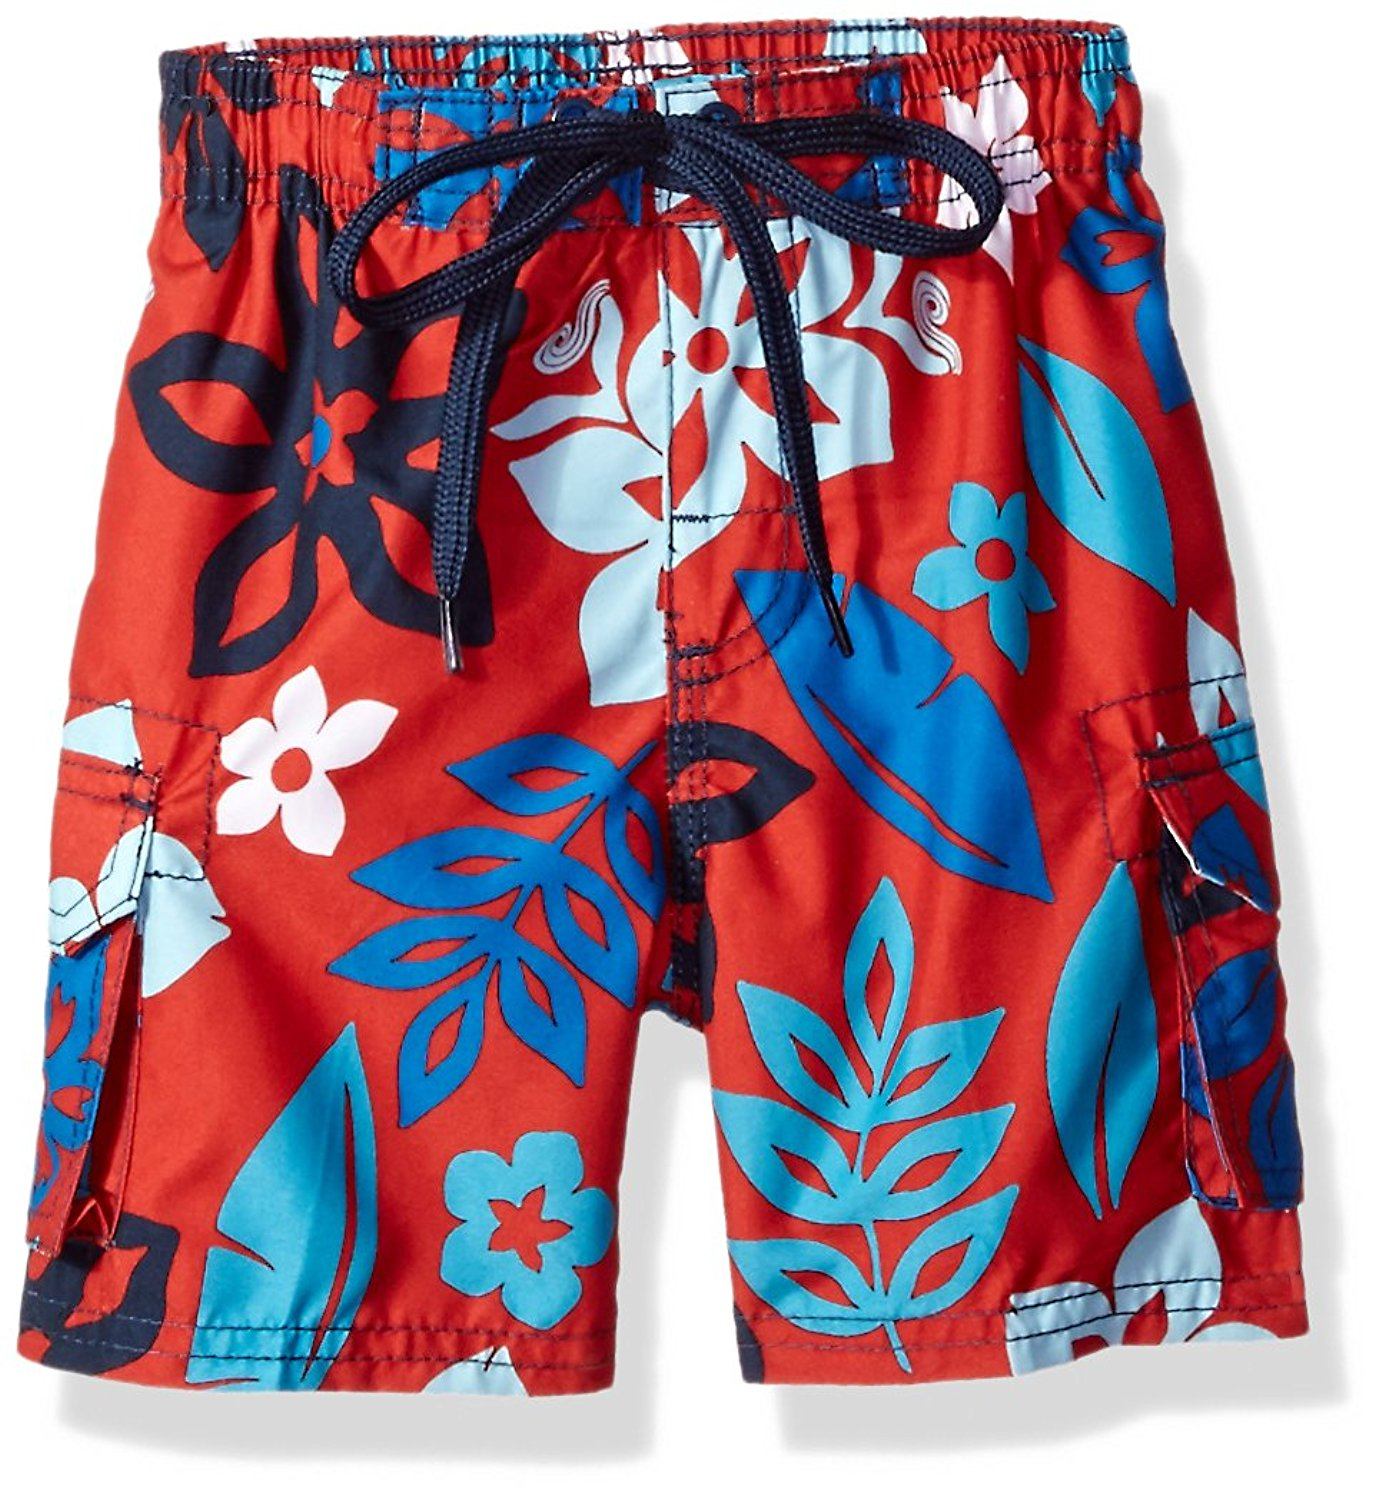 2a773f491d233 Get Quotations · Kanu Surf Boys' Revival Floral Quick Dry Beach Board  Shorts Swim Trunk